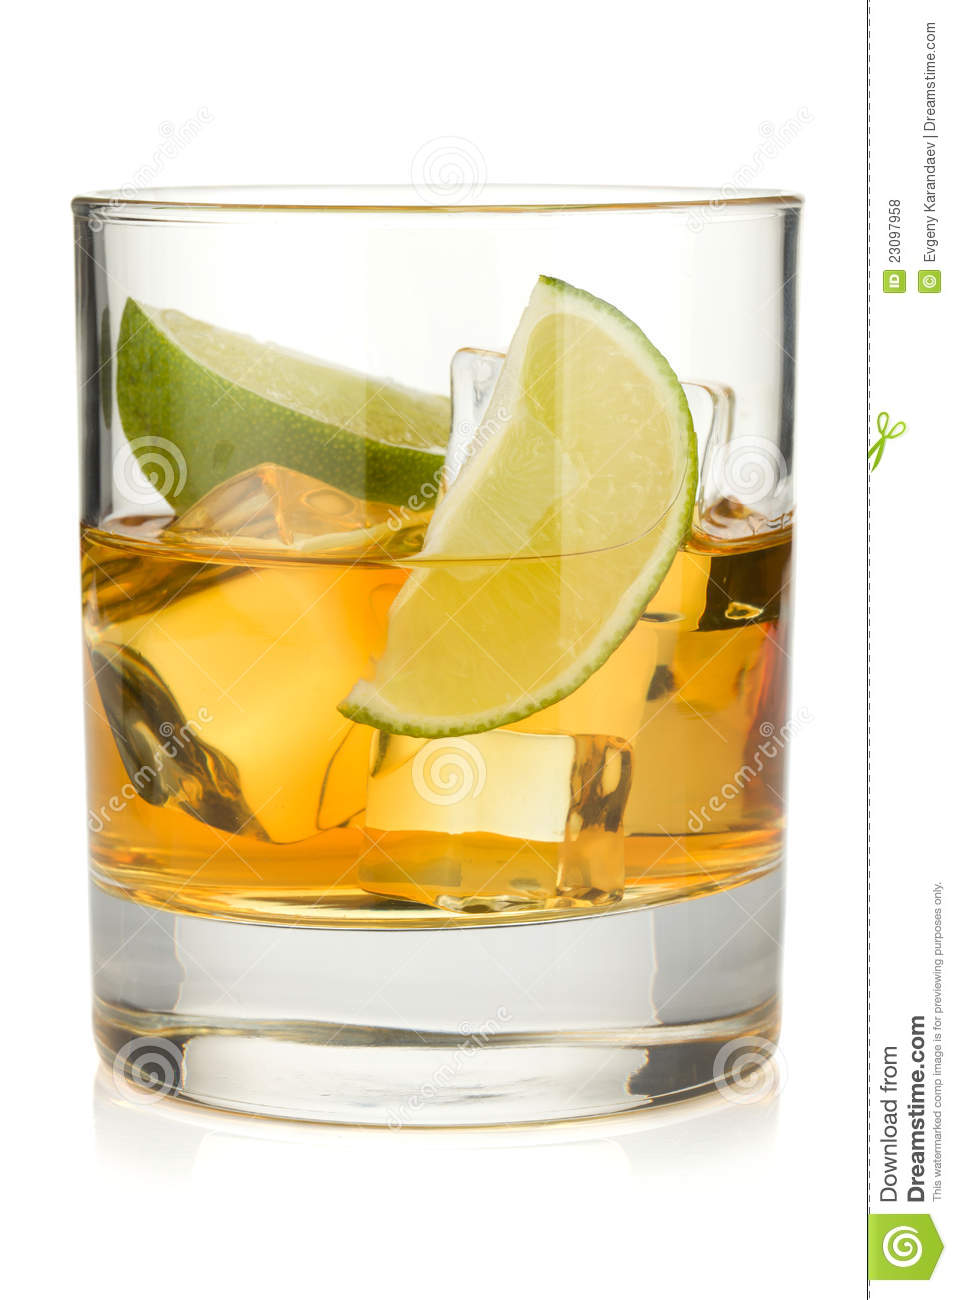 Whiskey Cocktail With Lime Royalty Free Stock Photos - Image: 23097958